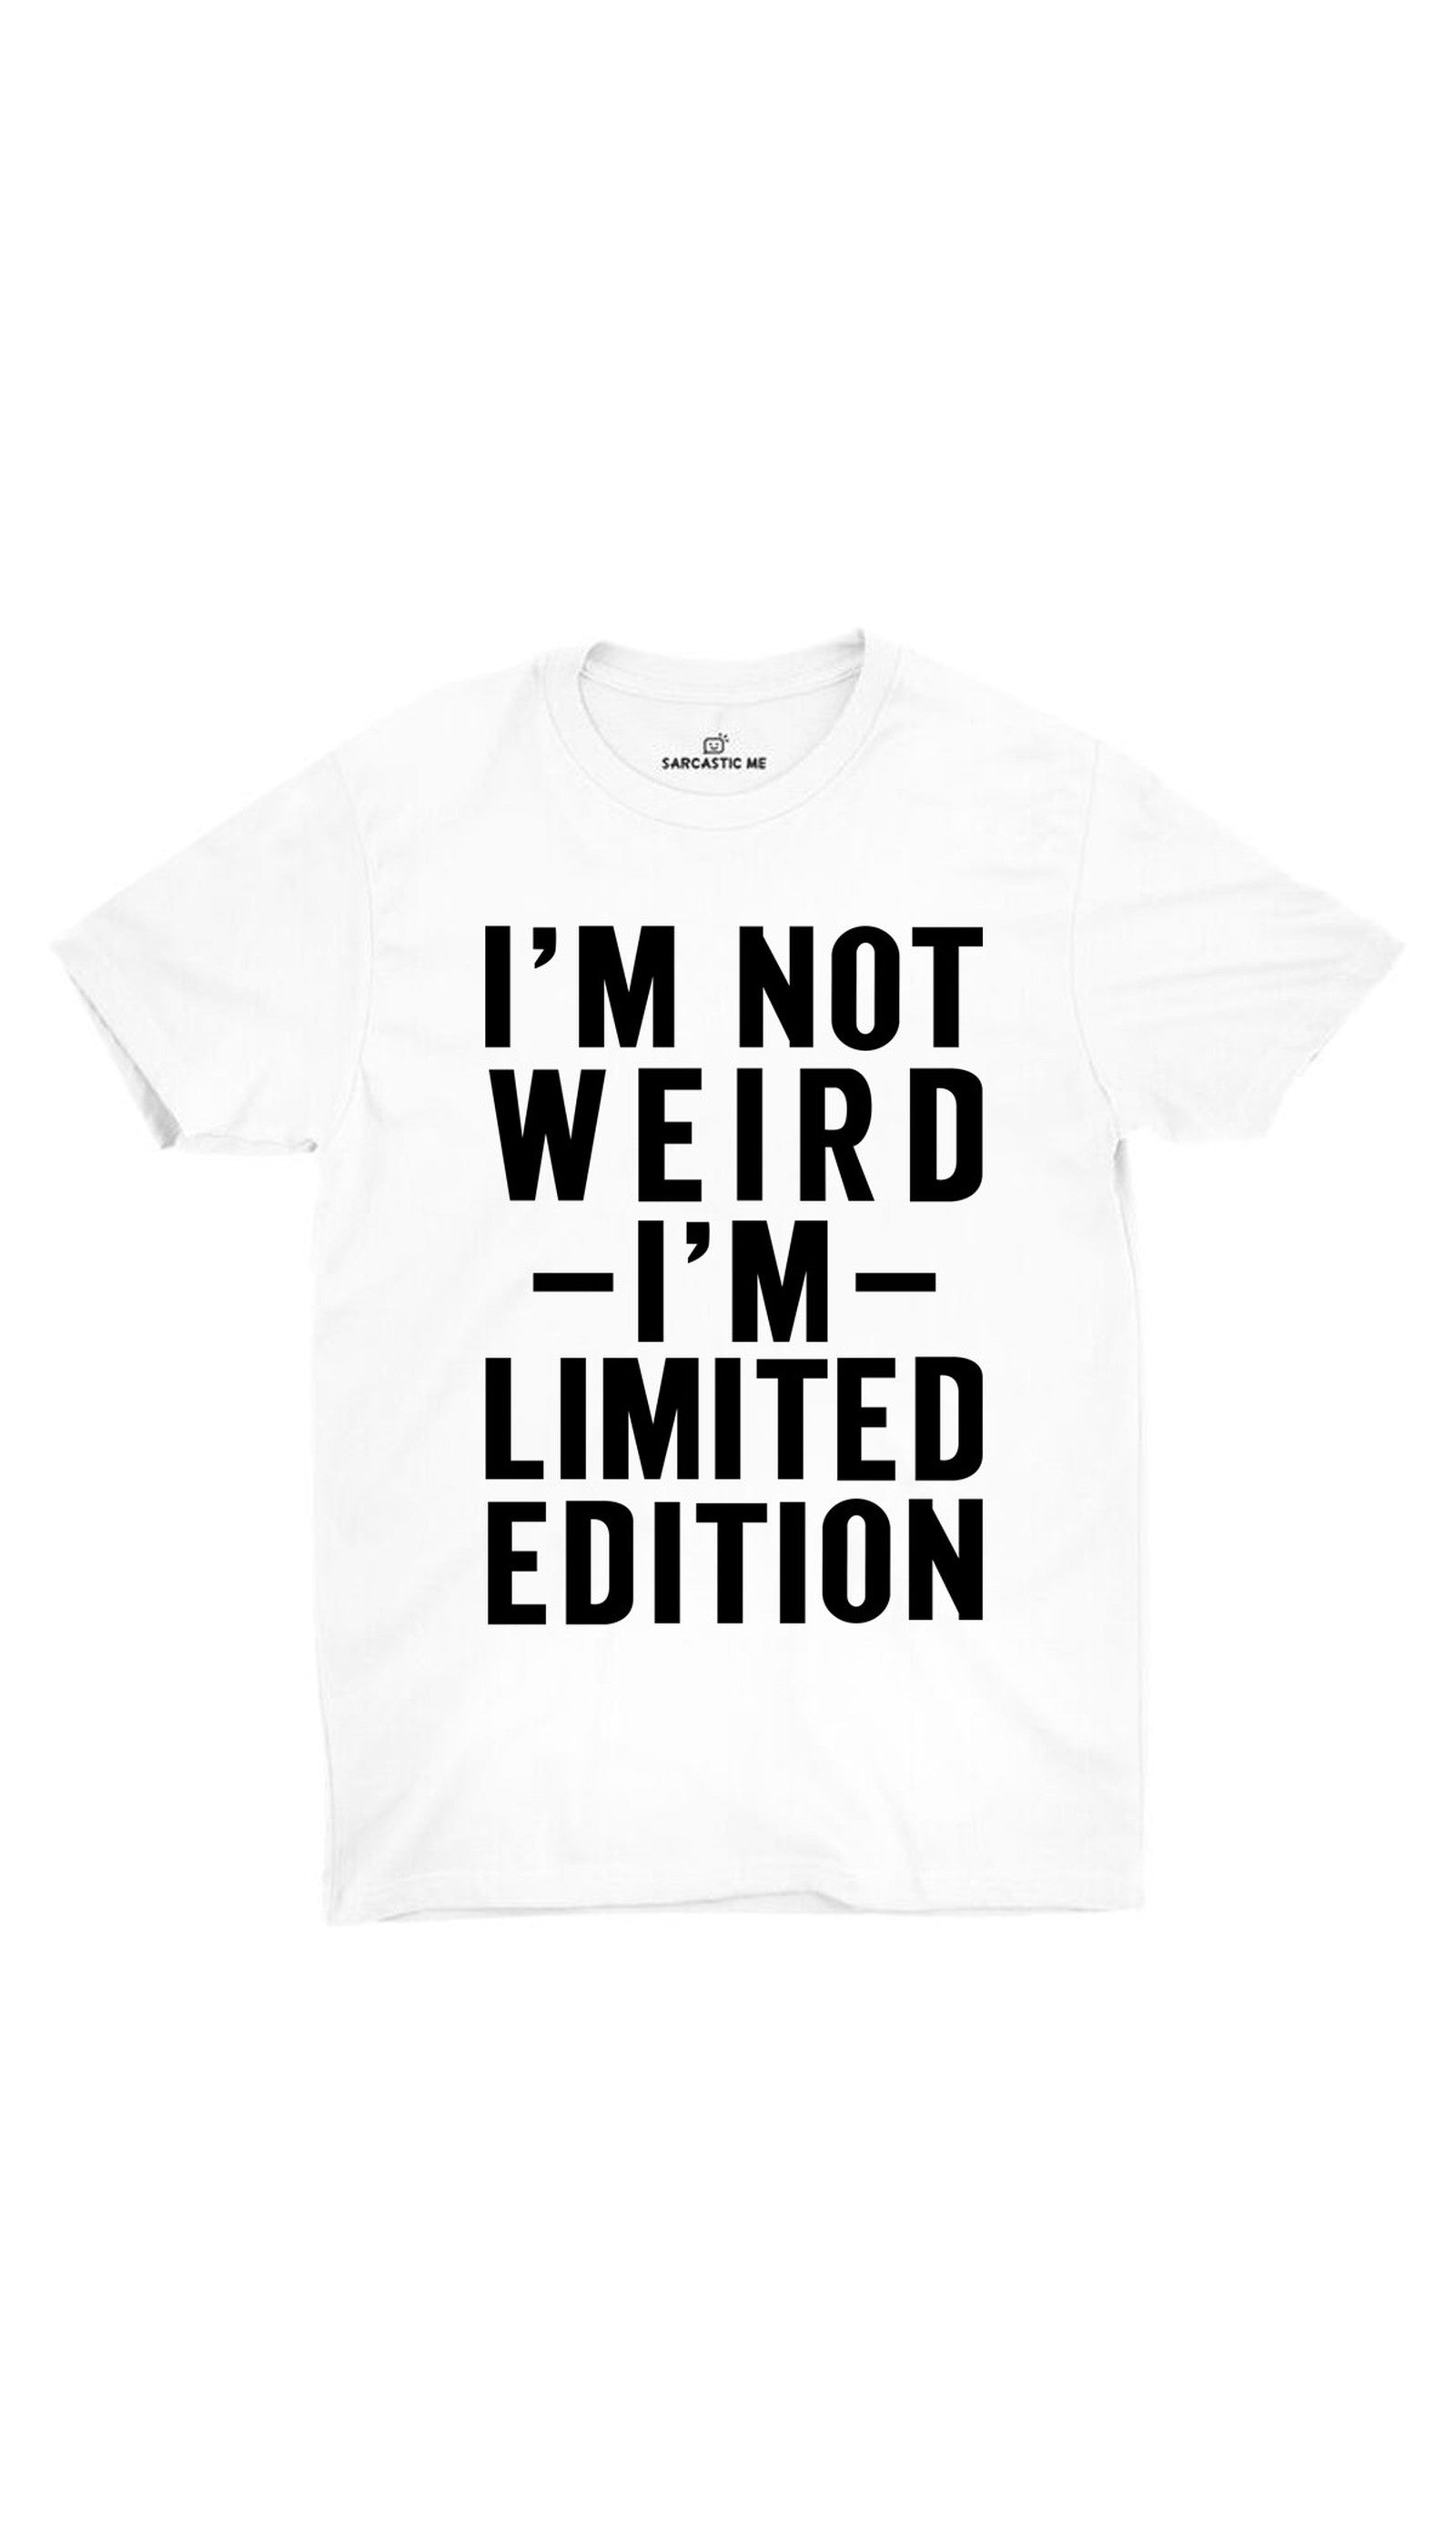 I'm Not Weird I'm Limited Edition White Unisex T-shirt | Sarcastic ME